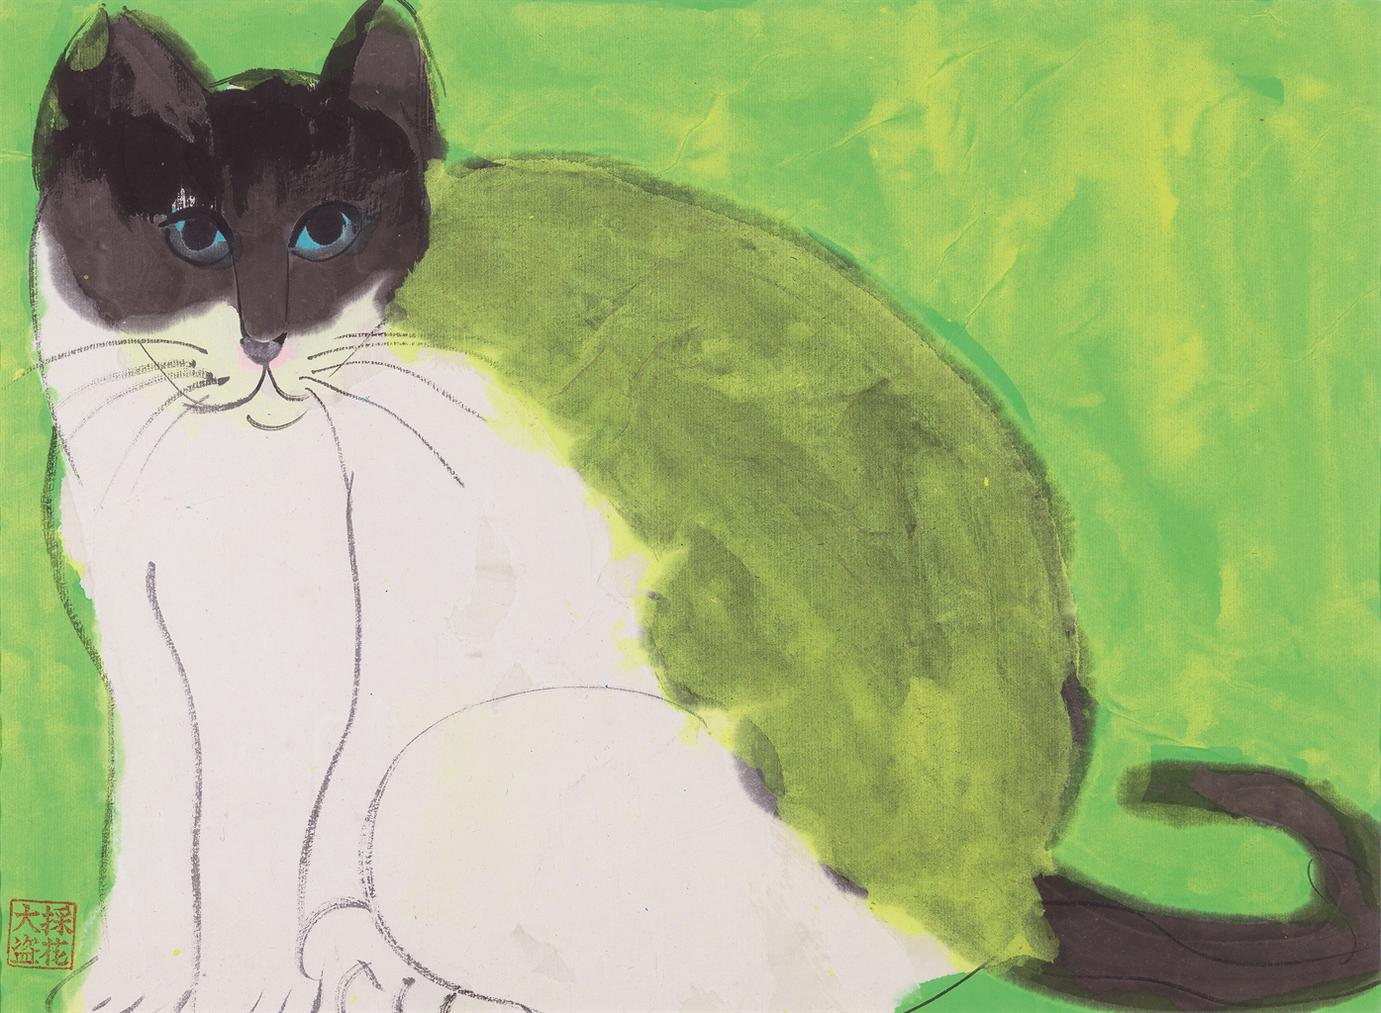 Walasse Ting-A Green Cat-